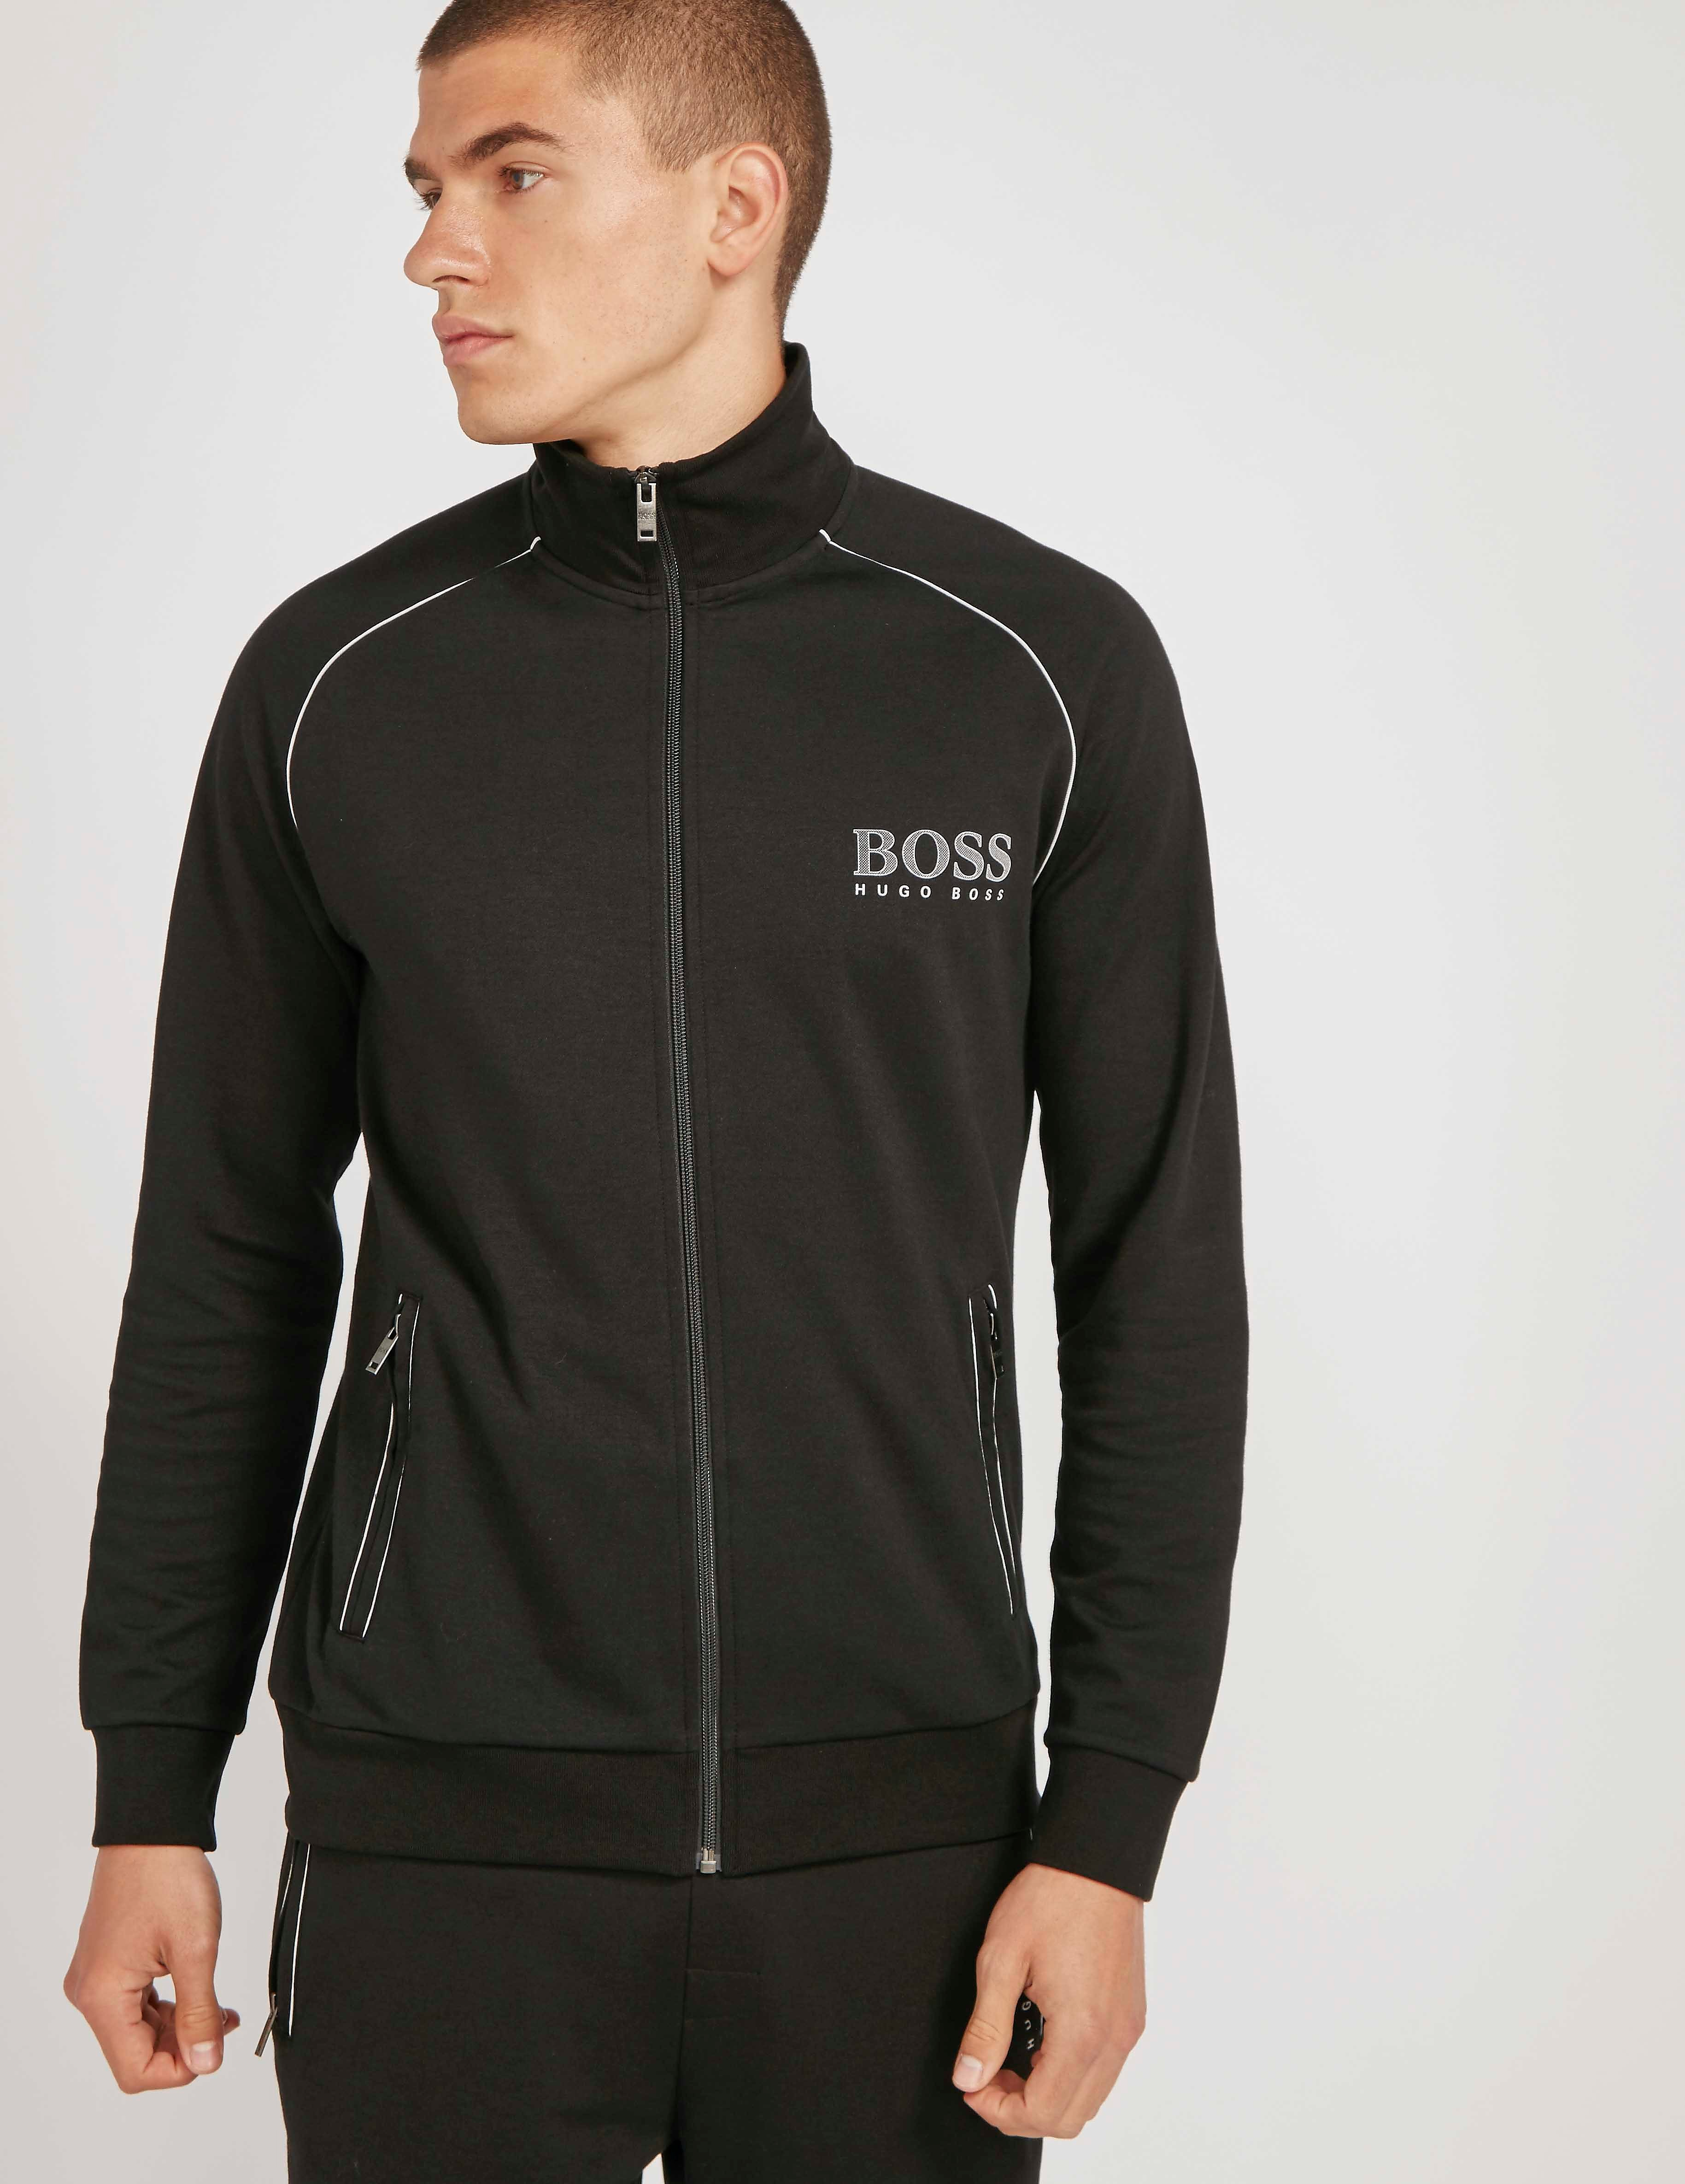 BOSS Piped Track Top